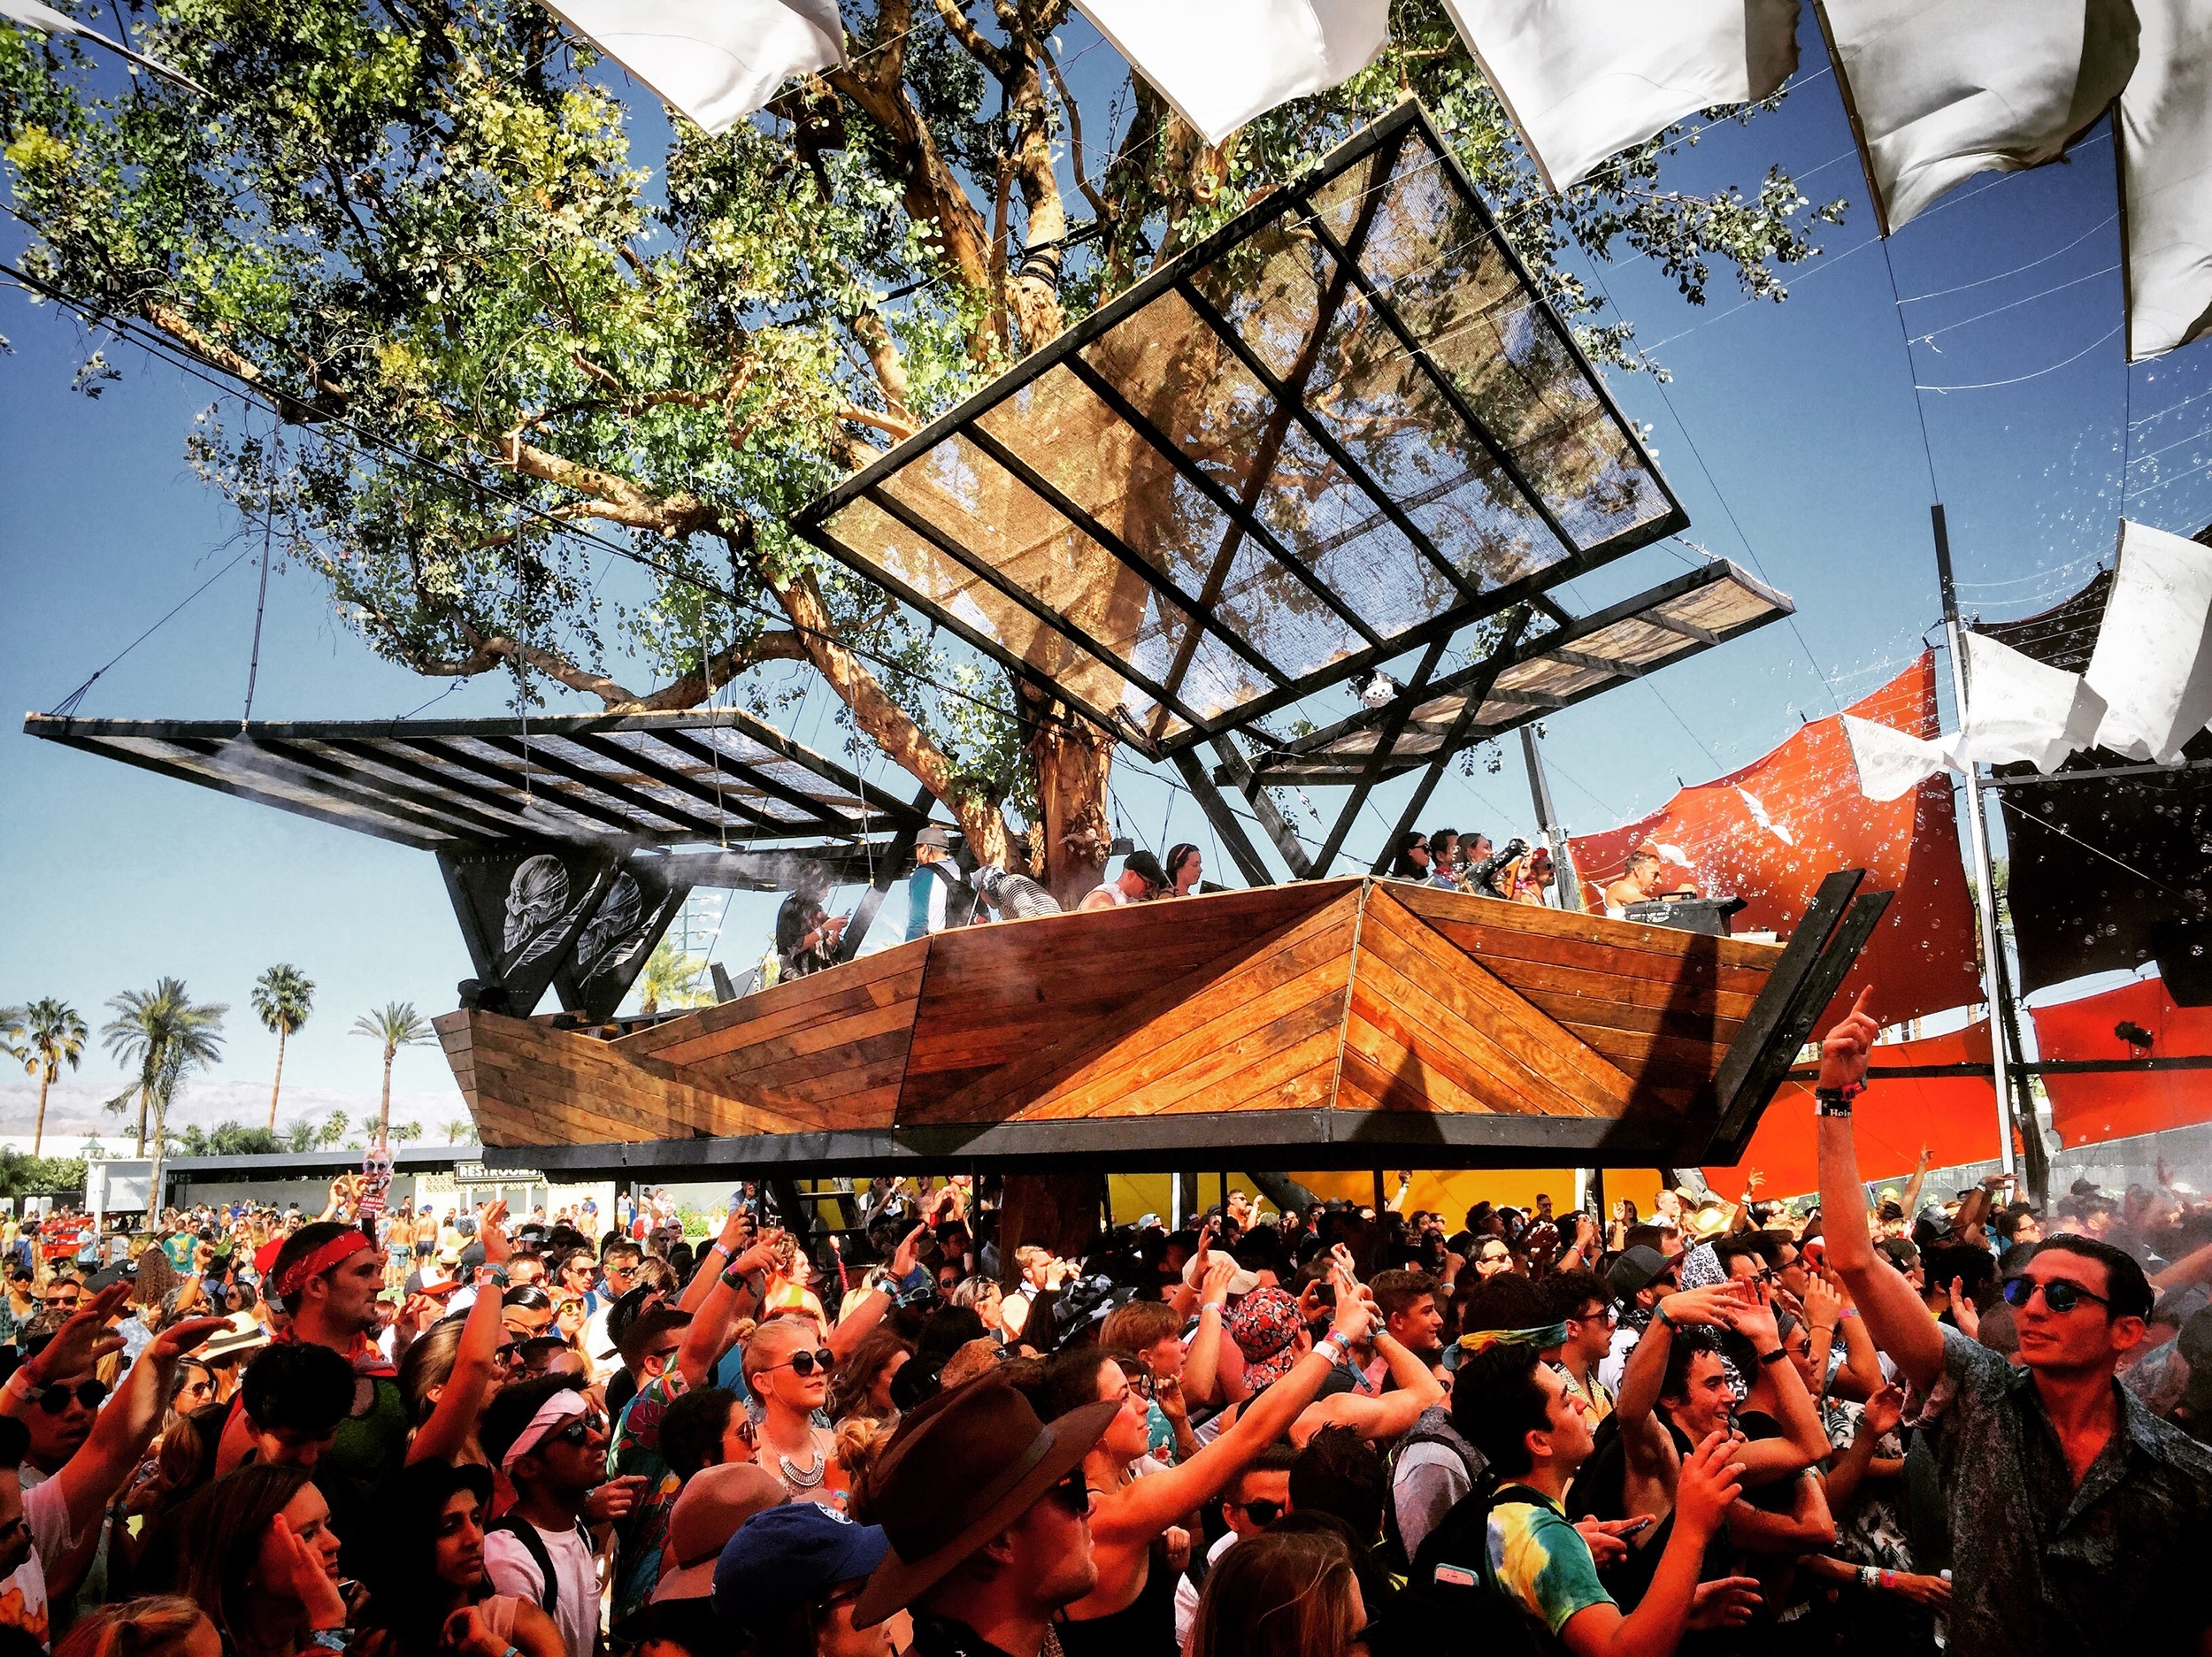 coachella-ss-biskt-do-lab-hunter-leggitt-studio-18